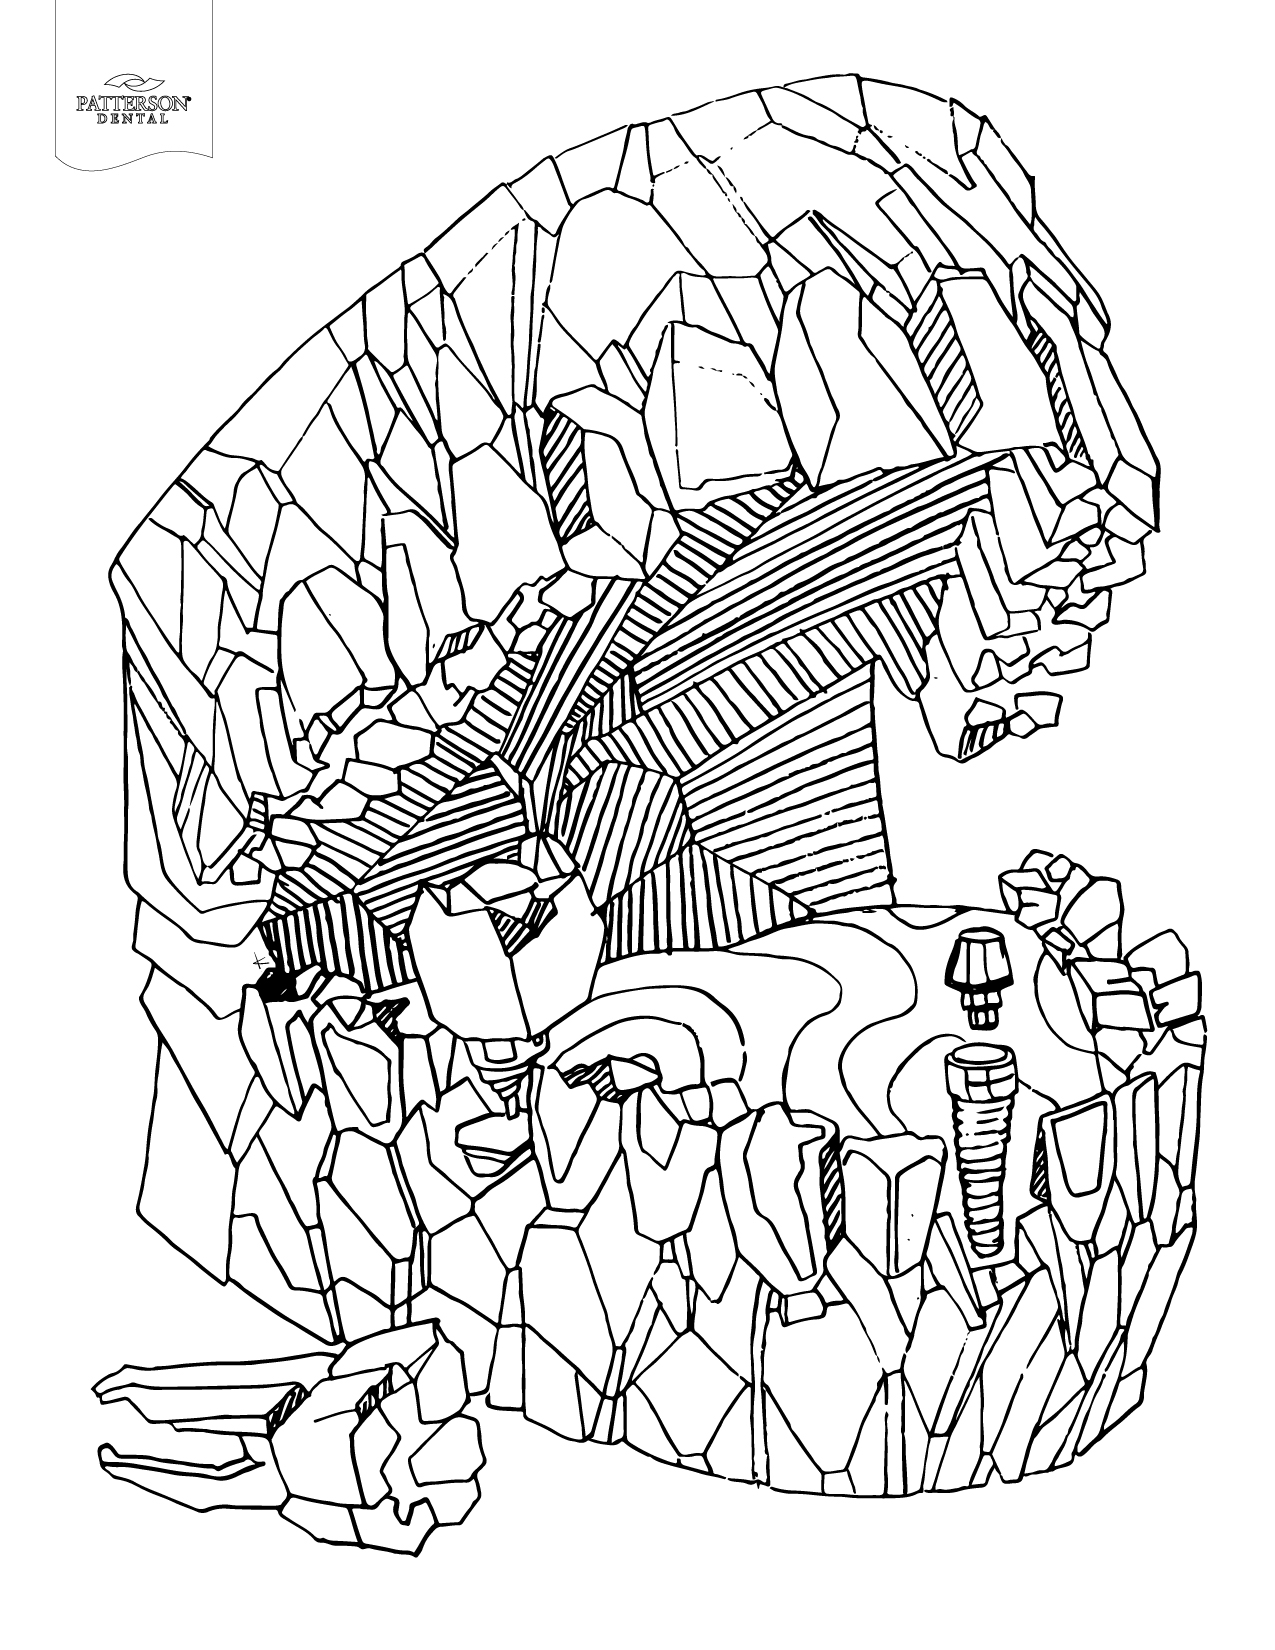 full size coloring pages adults - photo#19